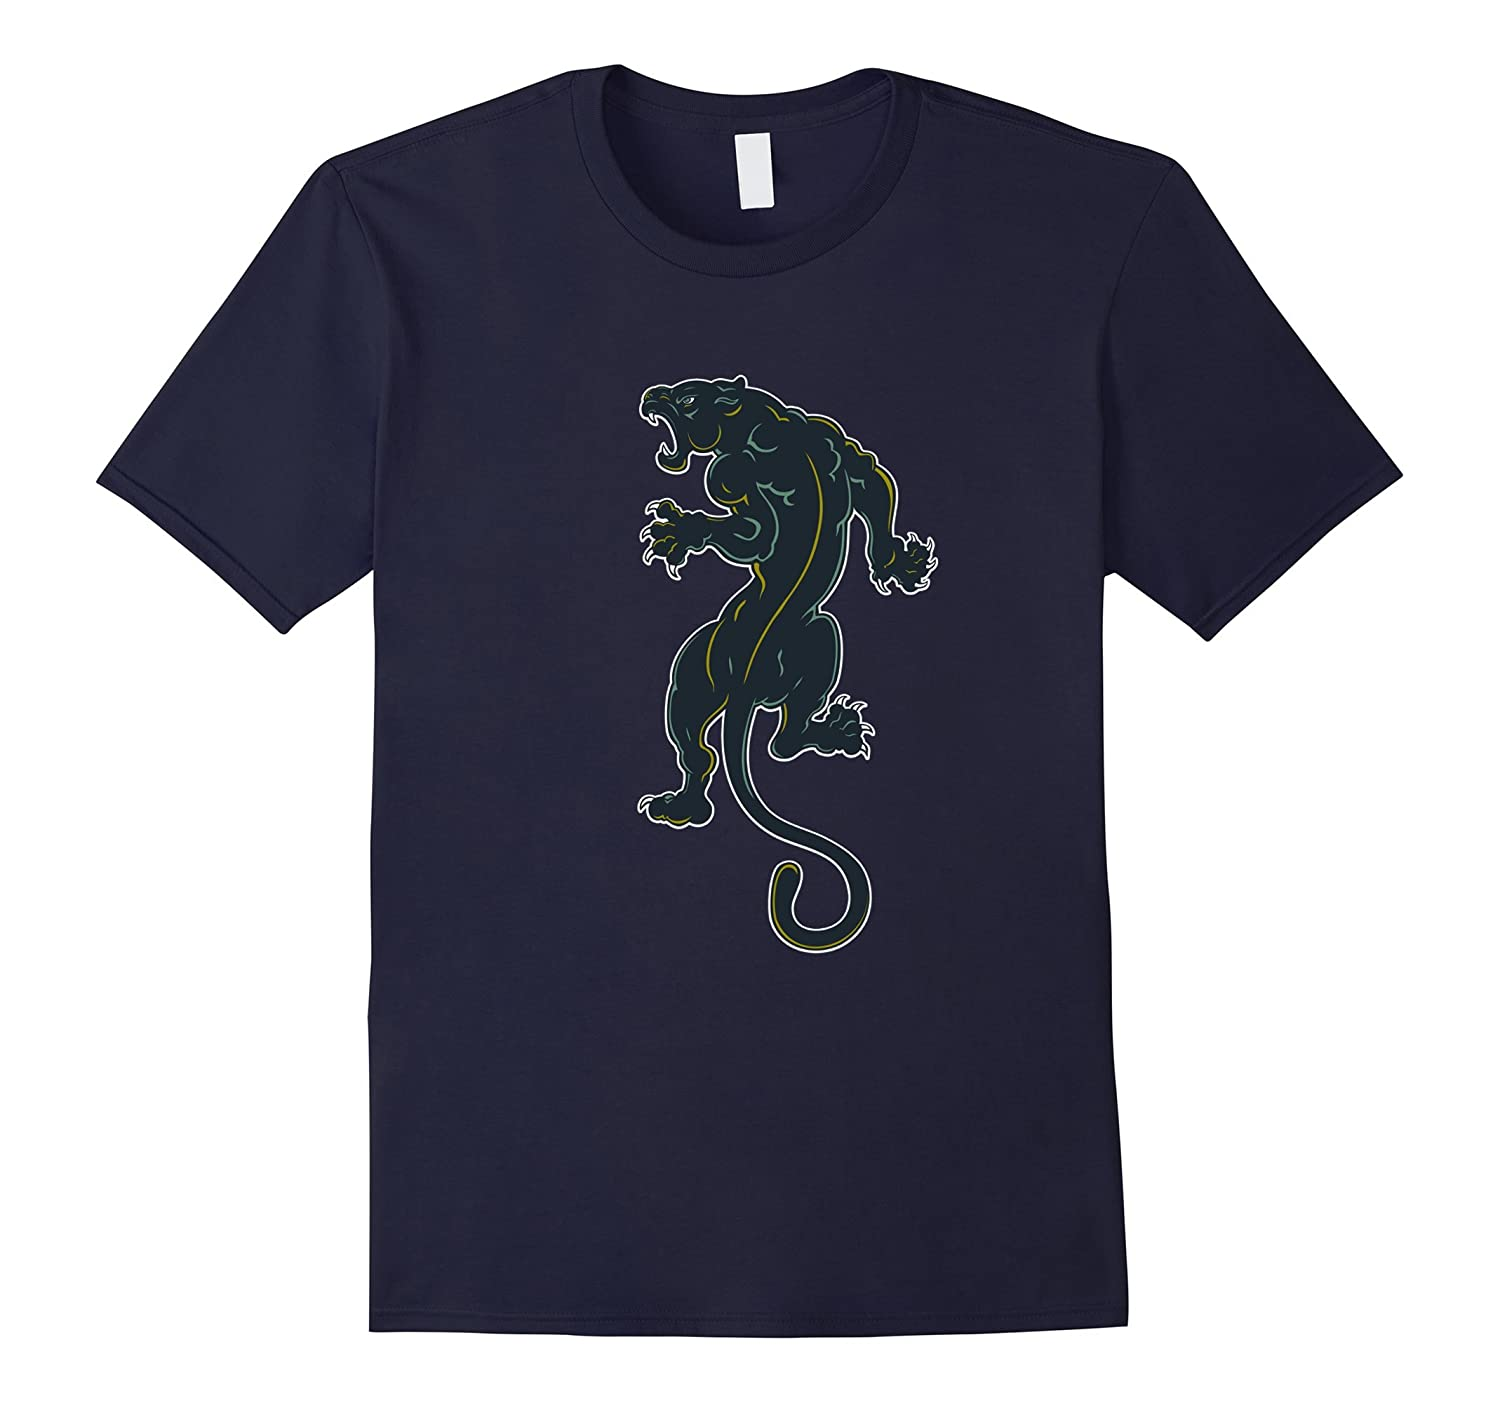 Black Tiger T Shirts For Women Graphic Tees For Men TeeToop-BN